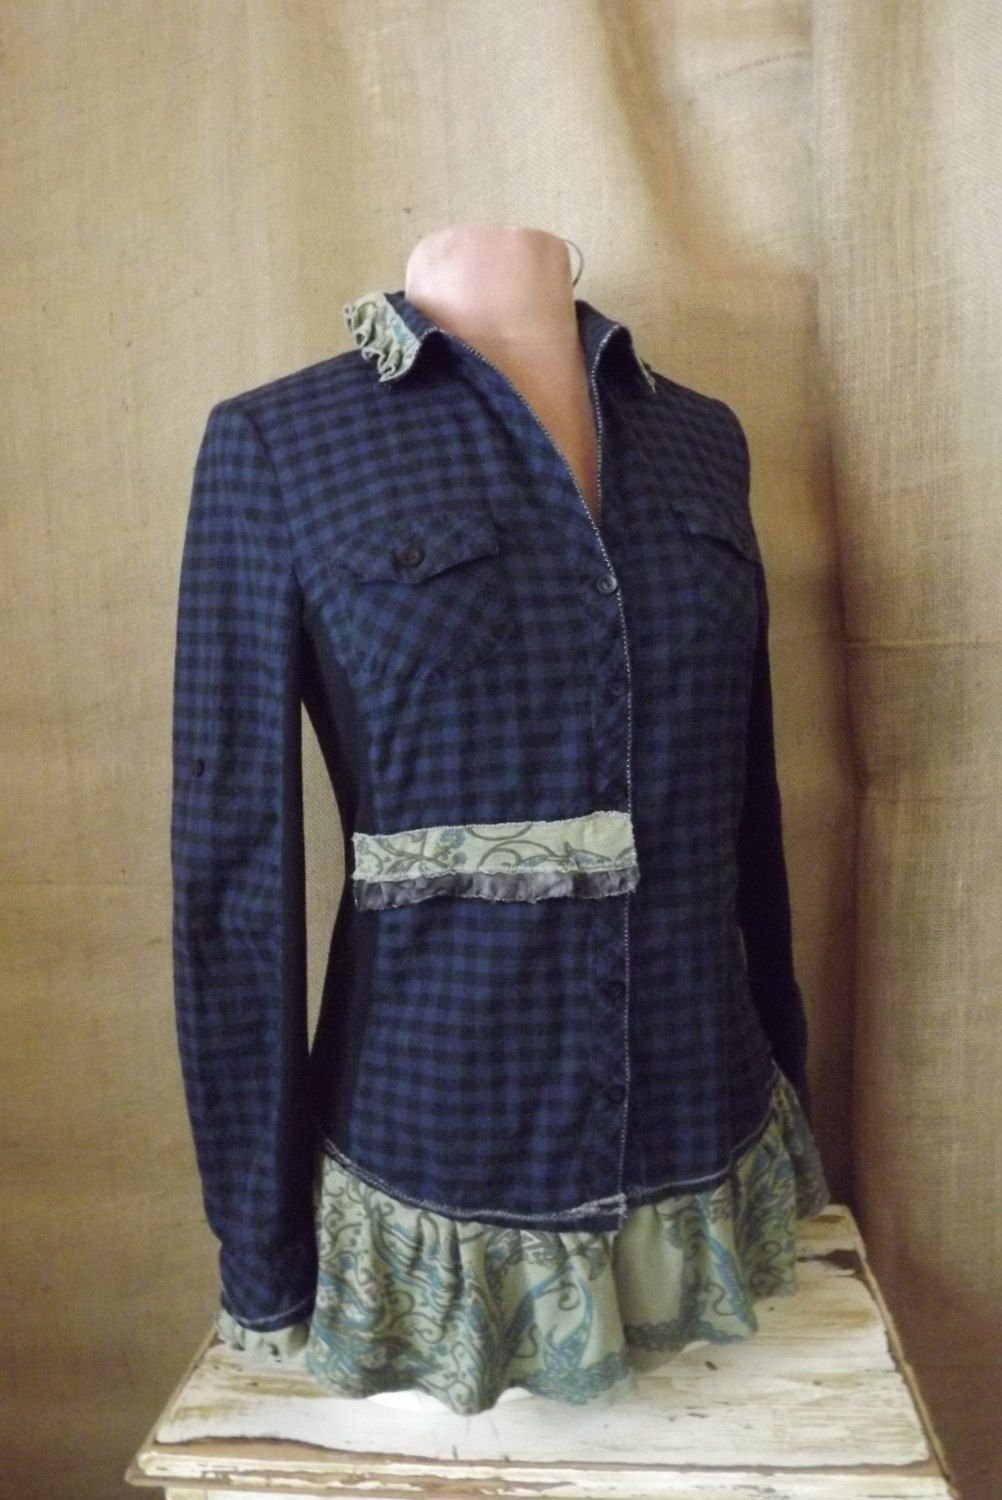 Women's Art to Wear French Tailored Upcycled Cotton Check and Ruffles Blouse Size S-M. $42.00, via Etsy.